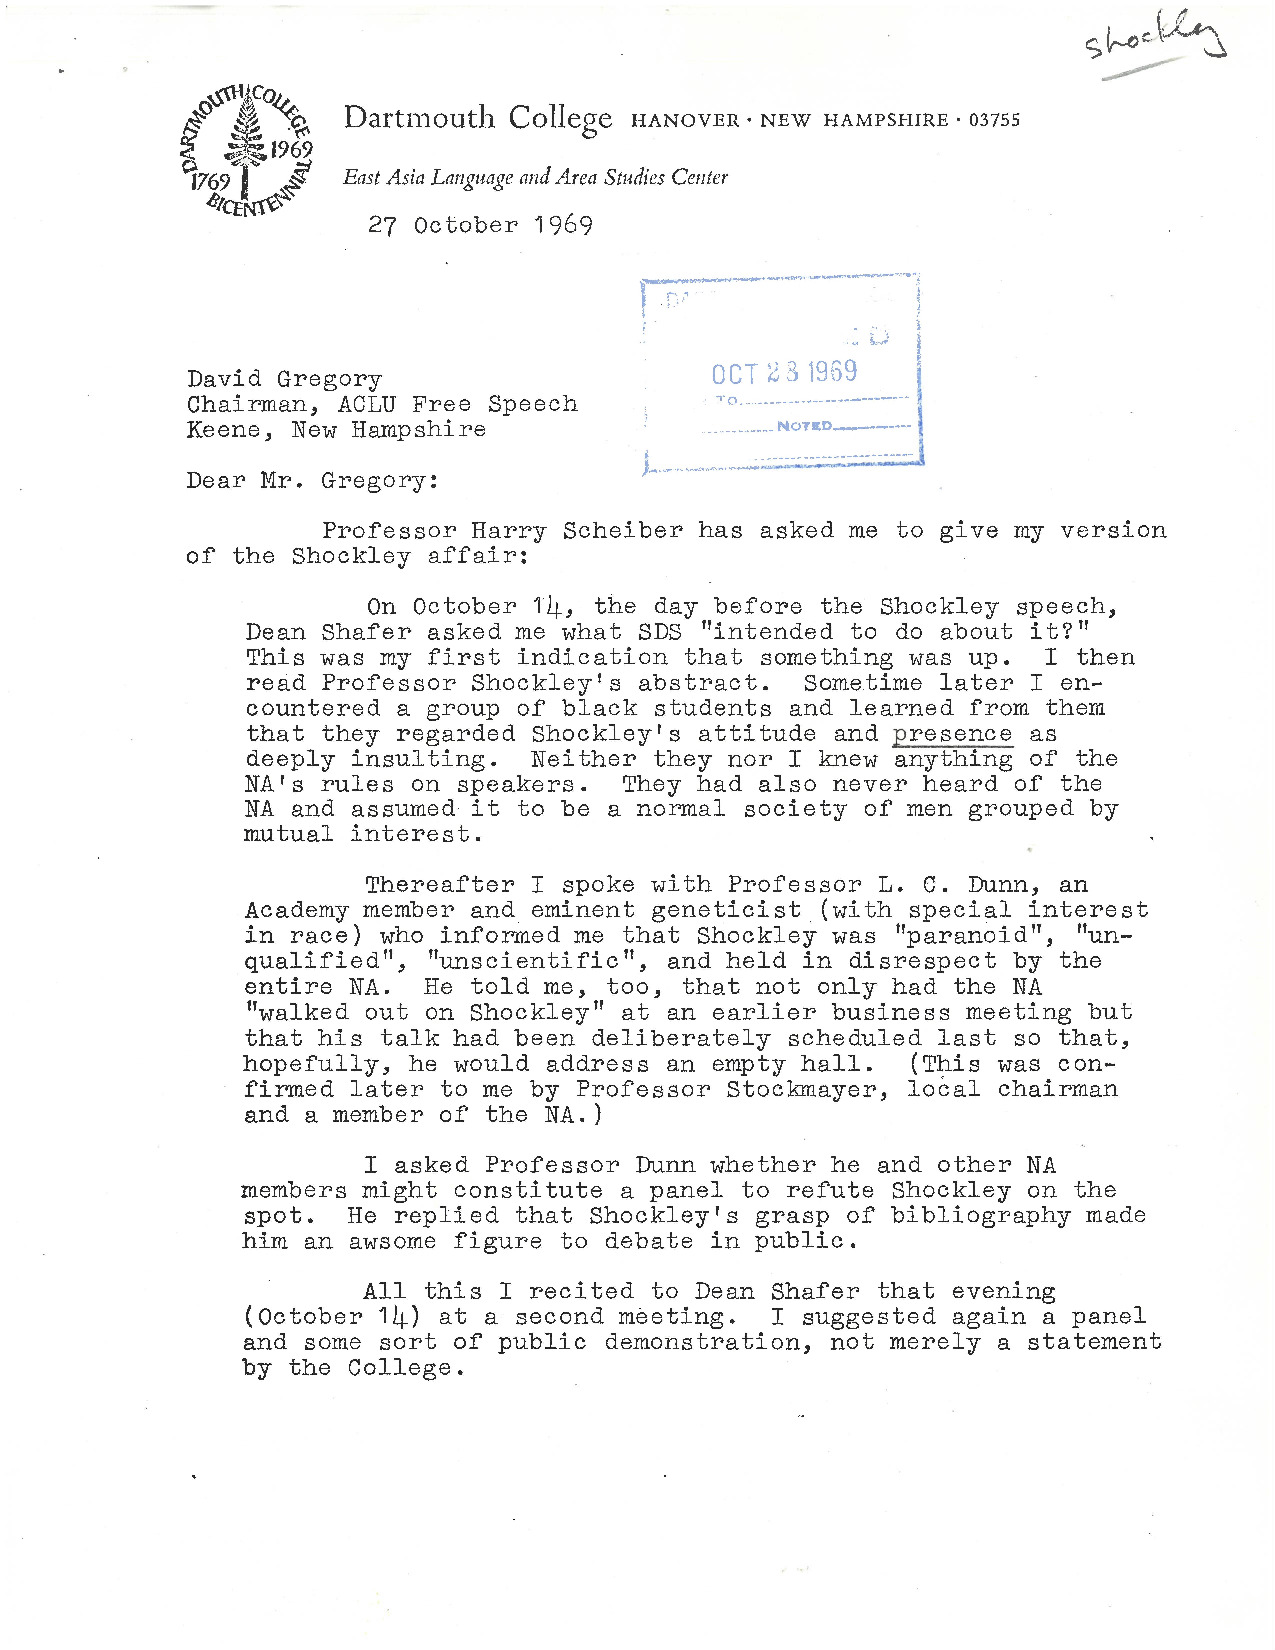 """Prof. Jonathan Mirsky gives his perspective of the Shockley Incident to David Gregory, American Civil Liberties Union's Chairman on Free Speech. He explains that the National Academy themselves viewed Shockley with disdain and that """"his talk had been deliberately scheduled last so that, hopefully, he would address an empty hall."""" Mirsky concludes his letter with his overall assessment and opinion """"that by merely clapping, the blacks showed moderation [while] [t]he whites displayed inertia, insensitivity and perhaps a bit of cowardice."""""""